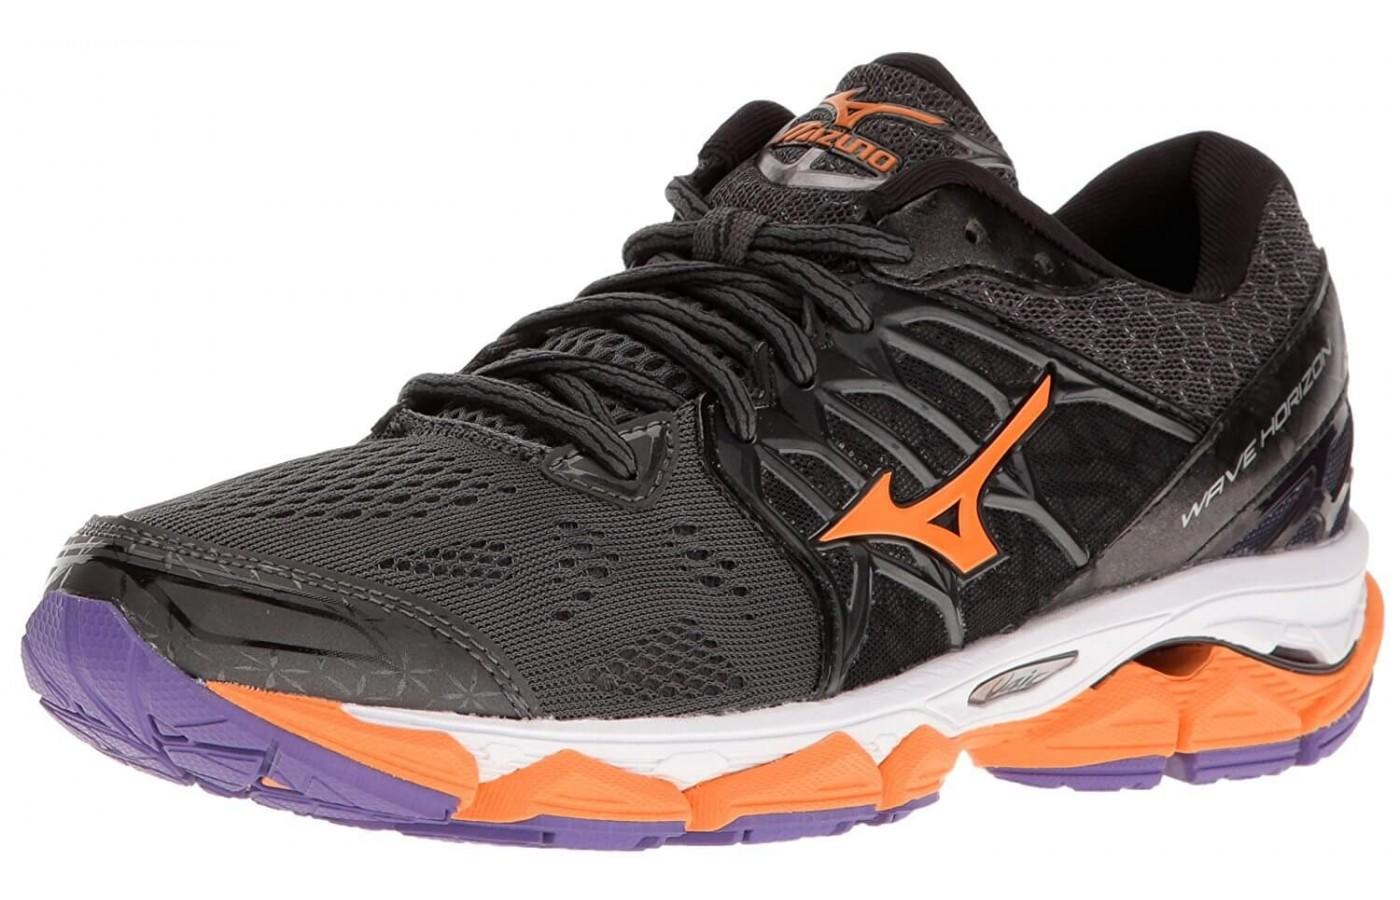 The Mizuno Wave Horizon shown from the front/side